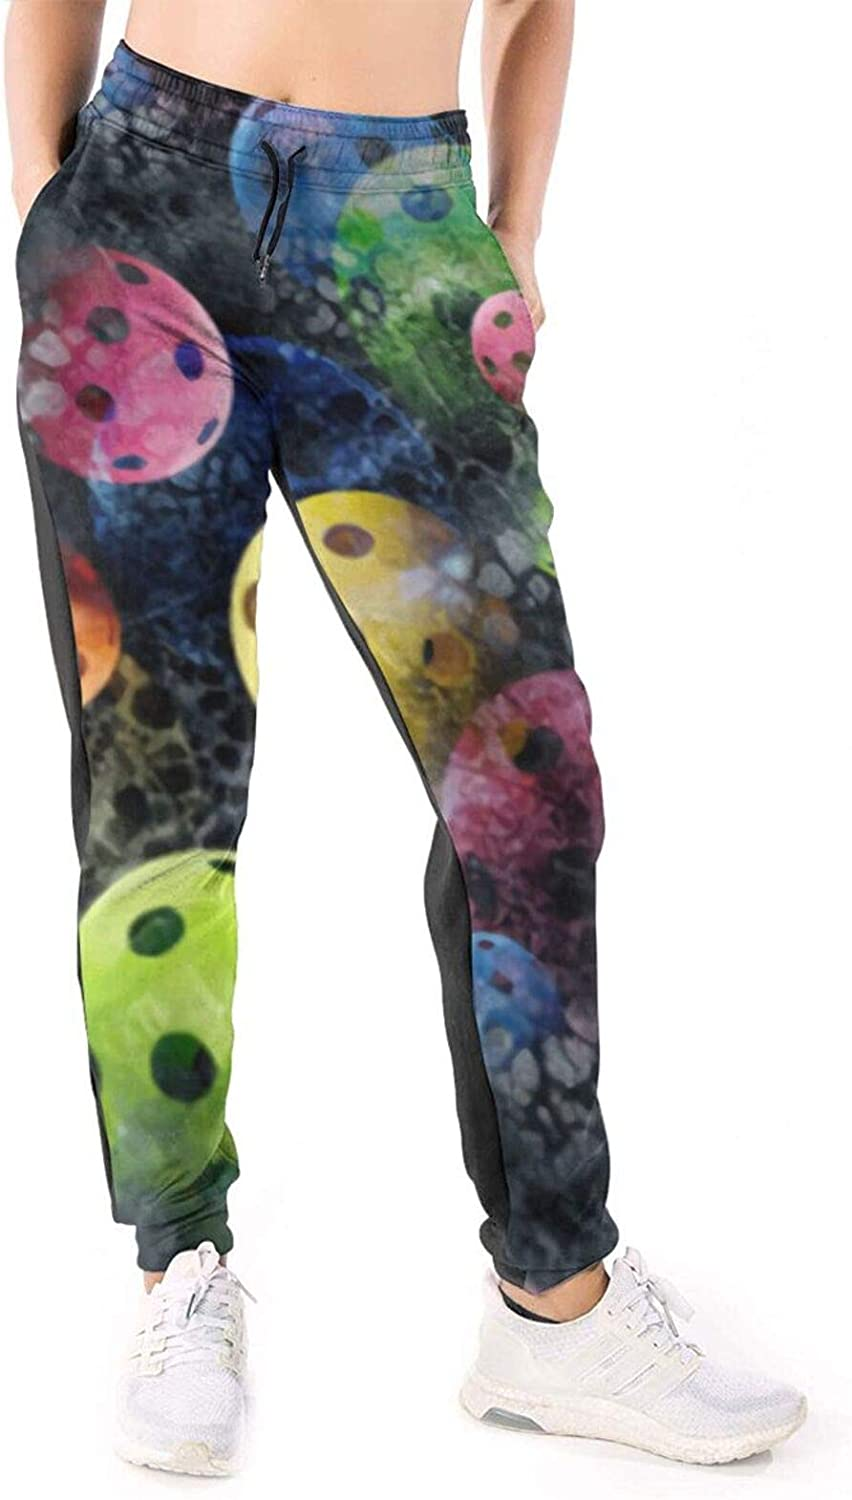 Women Joggers Pants Pickleball Ball Vintage Colorful Print Athletic Sweatpants with Pockets Casual Trousers Baggy